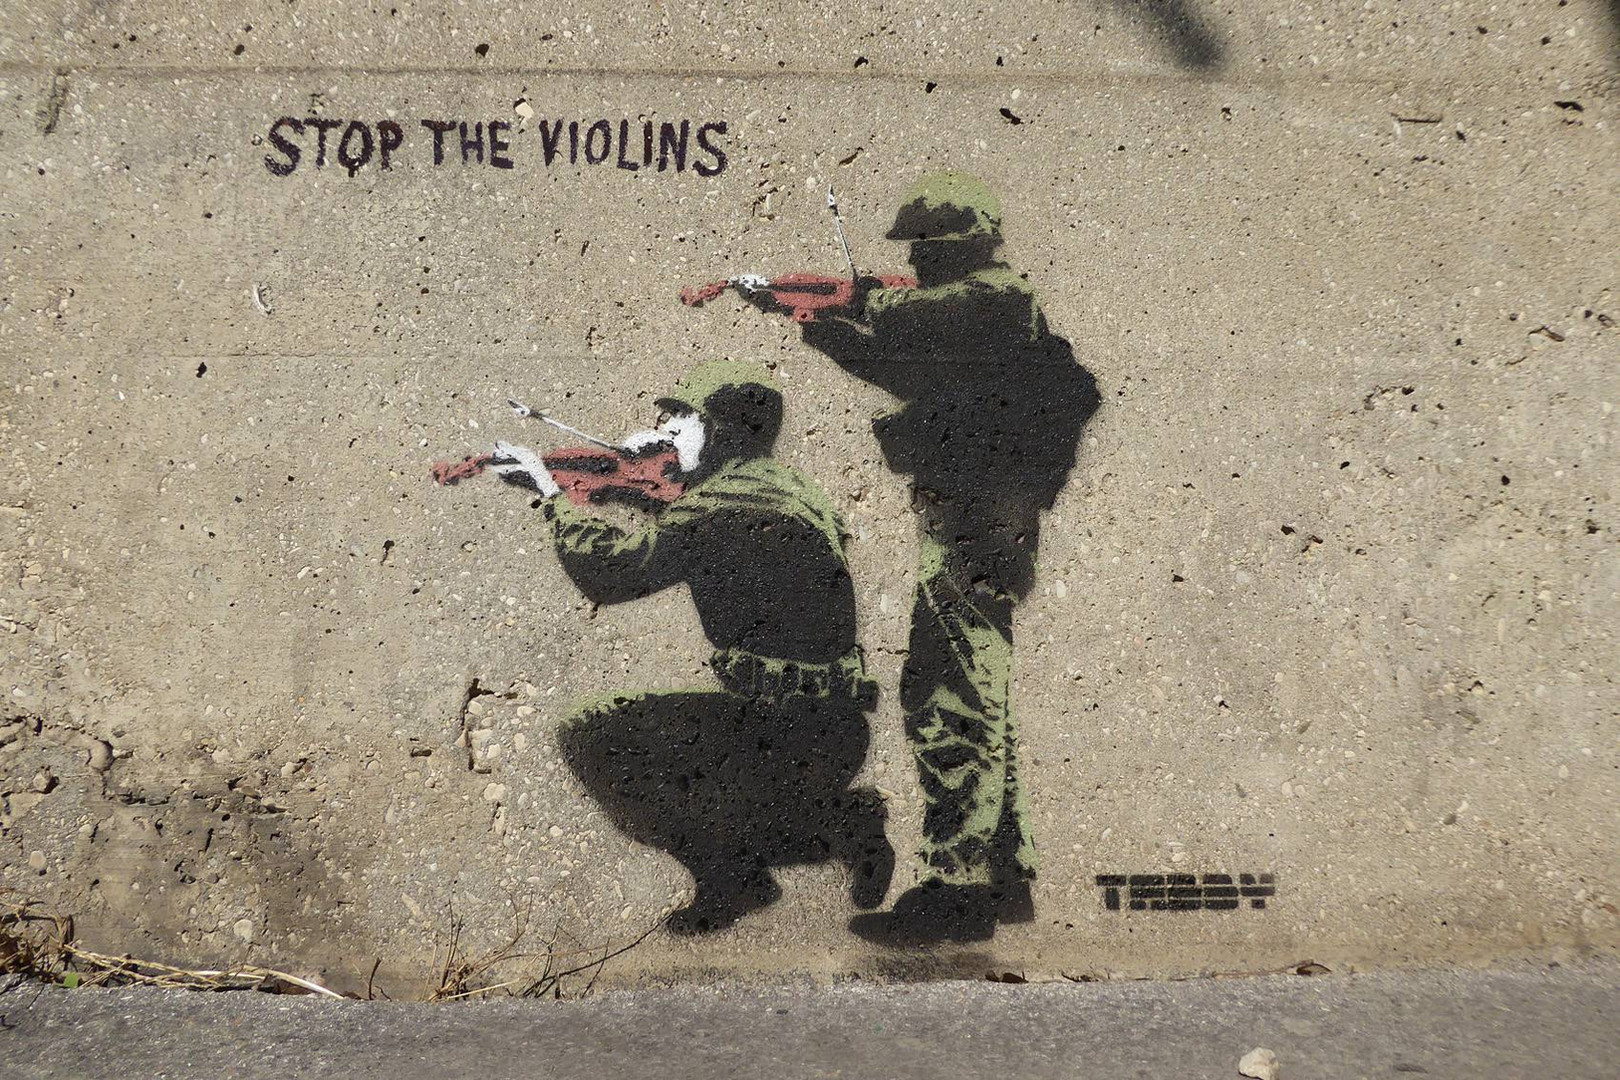 Stop the violins